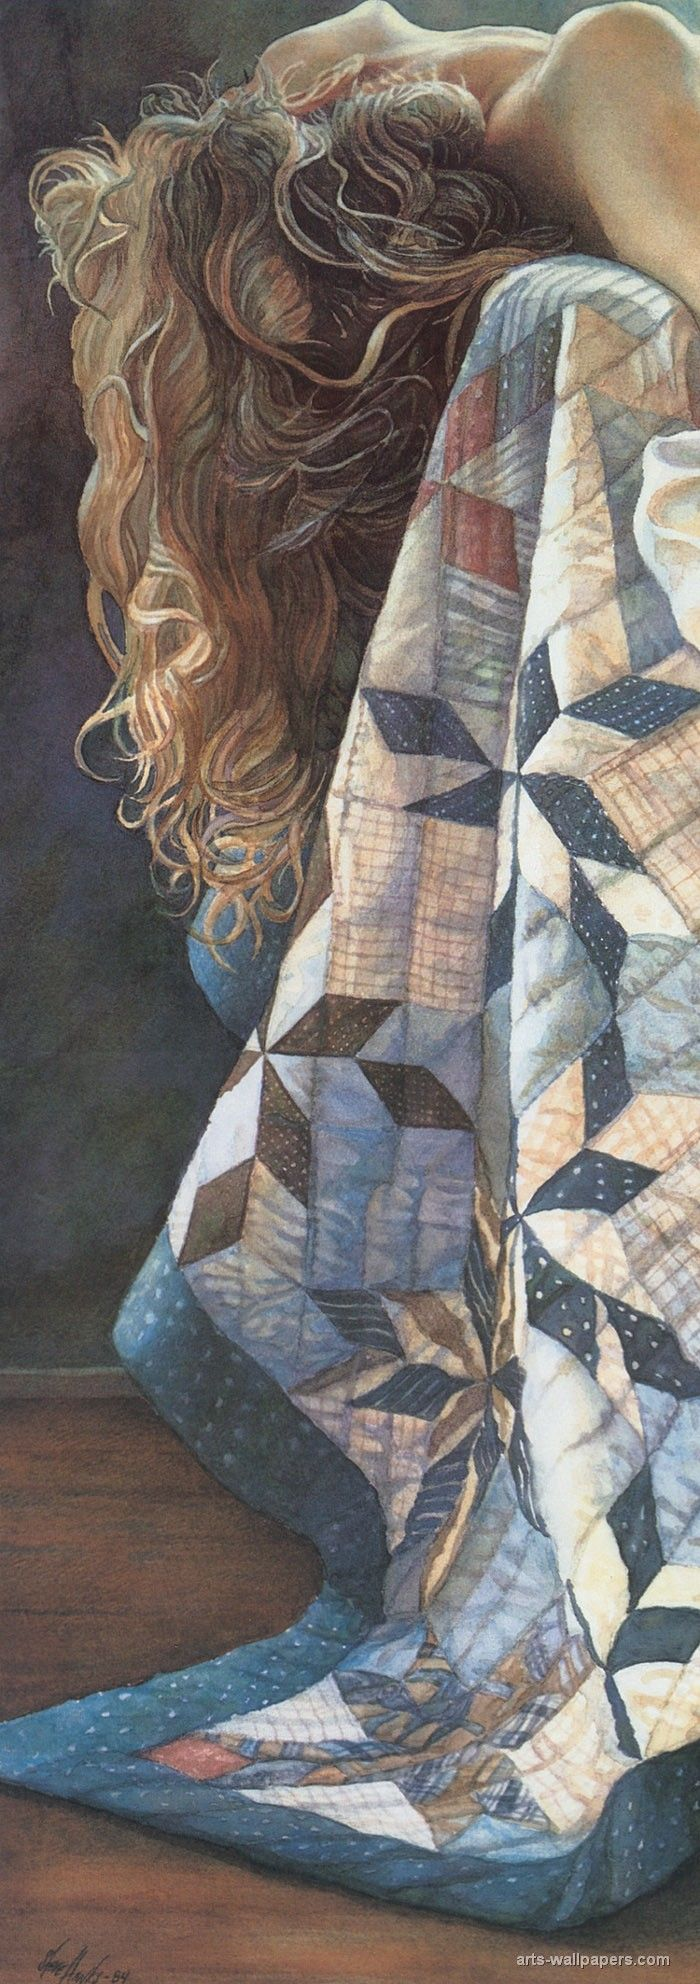 """In Her Emotions"" by Steve Hanks. Steve is my favorite. I have this print and I love it....."